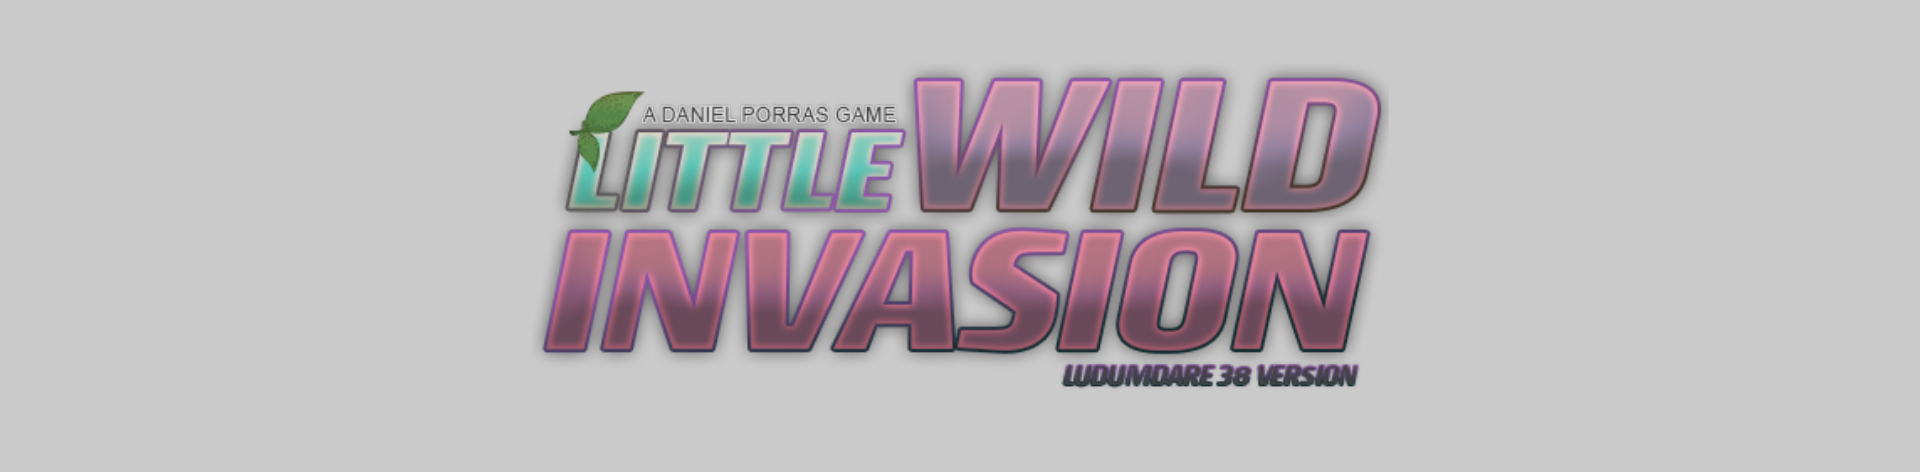 Little Wild Invasion